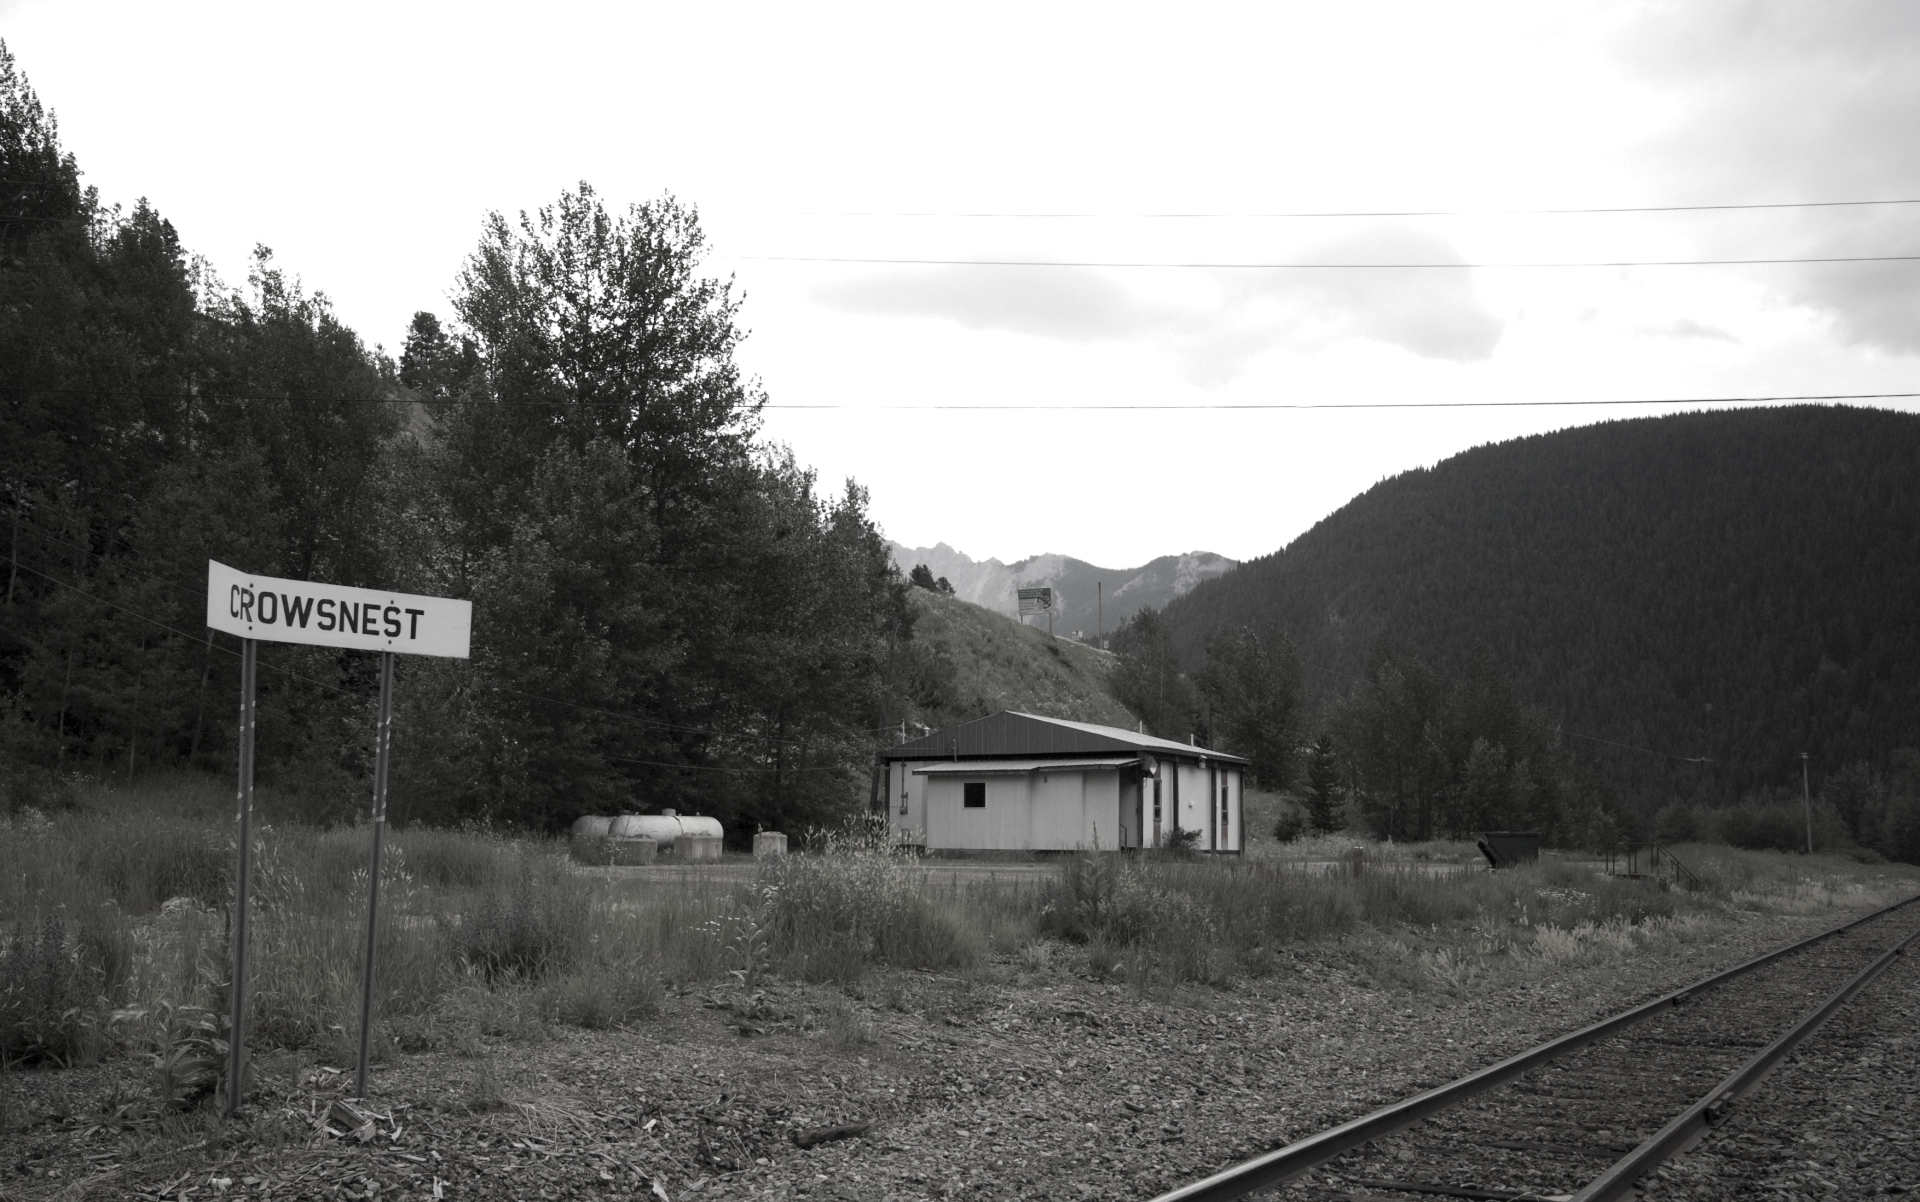 Crowsnest Station